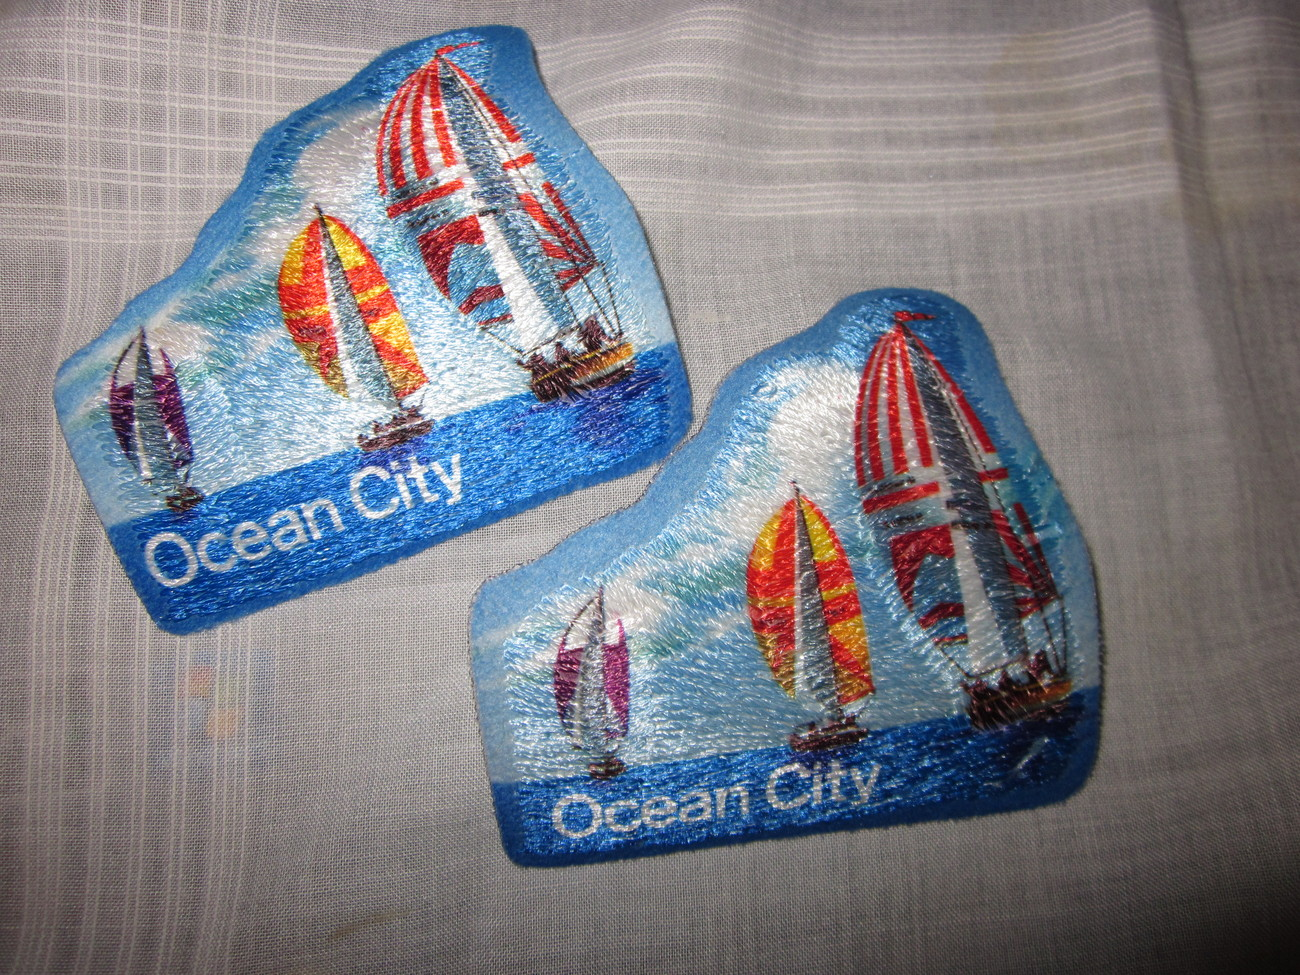 Two Ocean City Iron On Fabric Patches Identical Lot 1